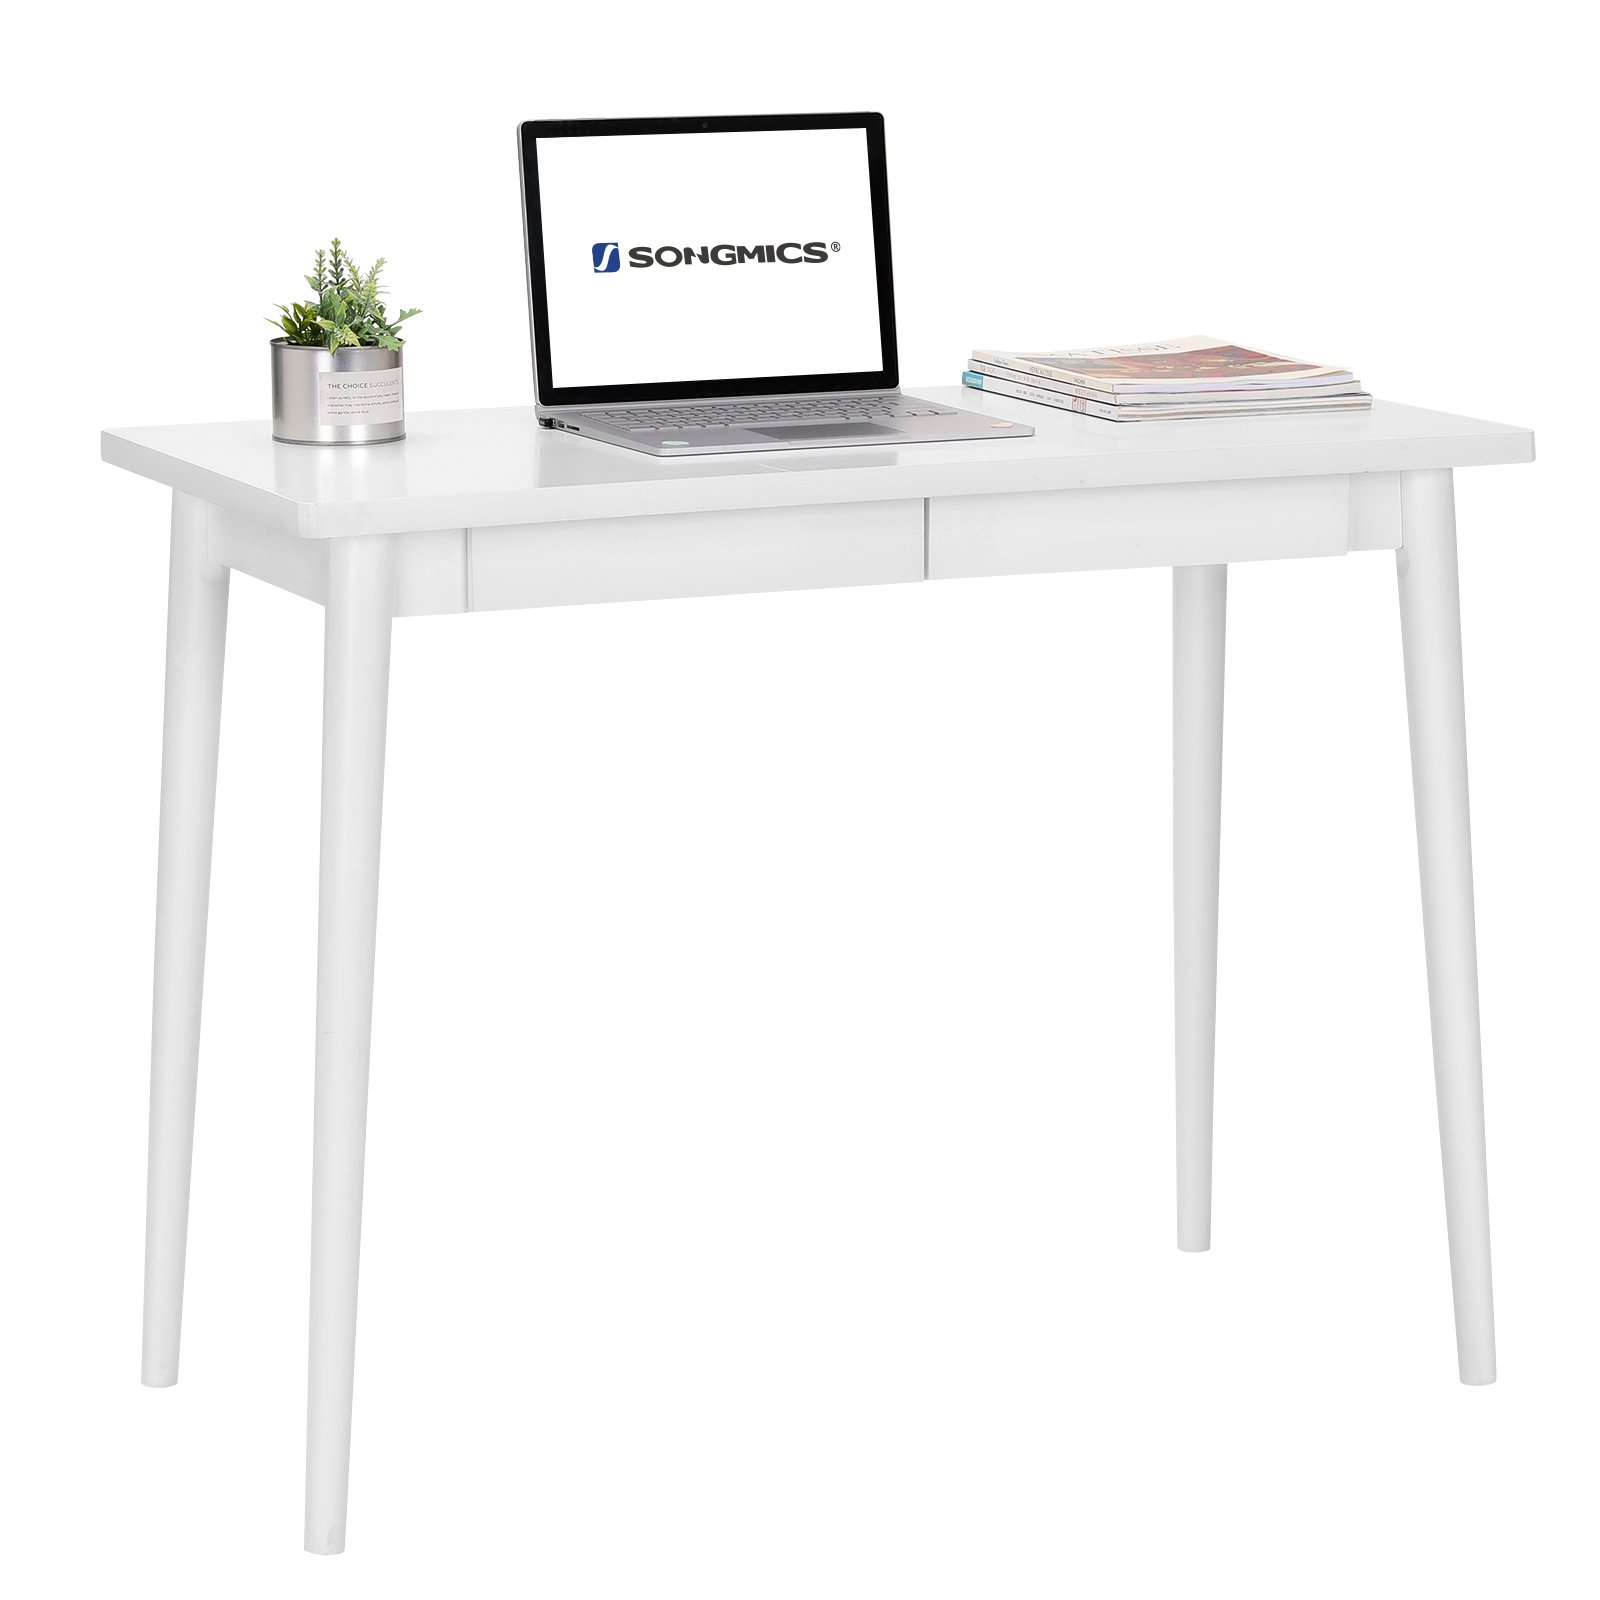 SONGMICS vanity Table ,Simple Wooden Writing Desk, Home Office Computer Desk, Study Desk with 2 Sliding Drawers, Modern desk with storage for home and Office, White ULOD02WT